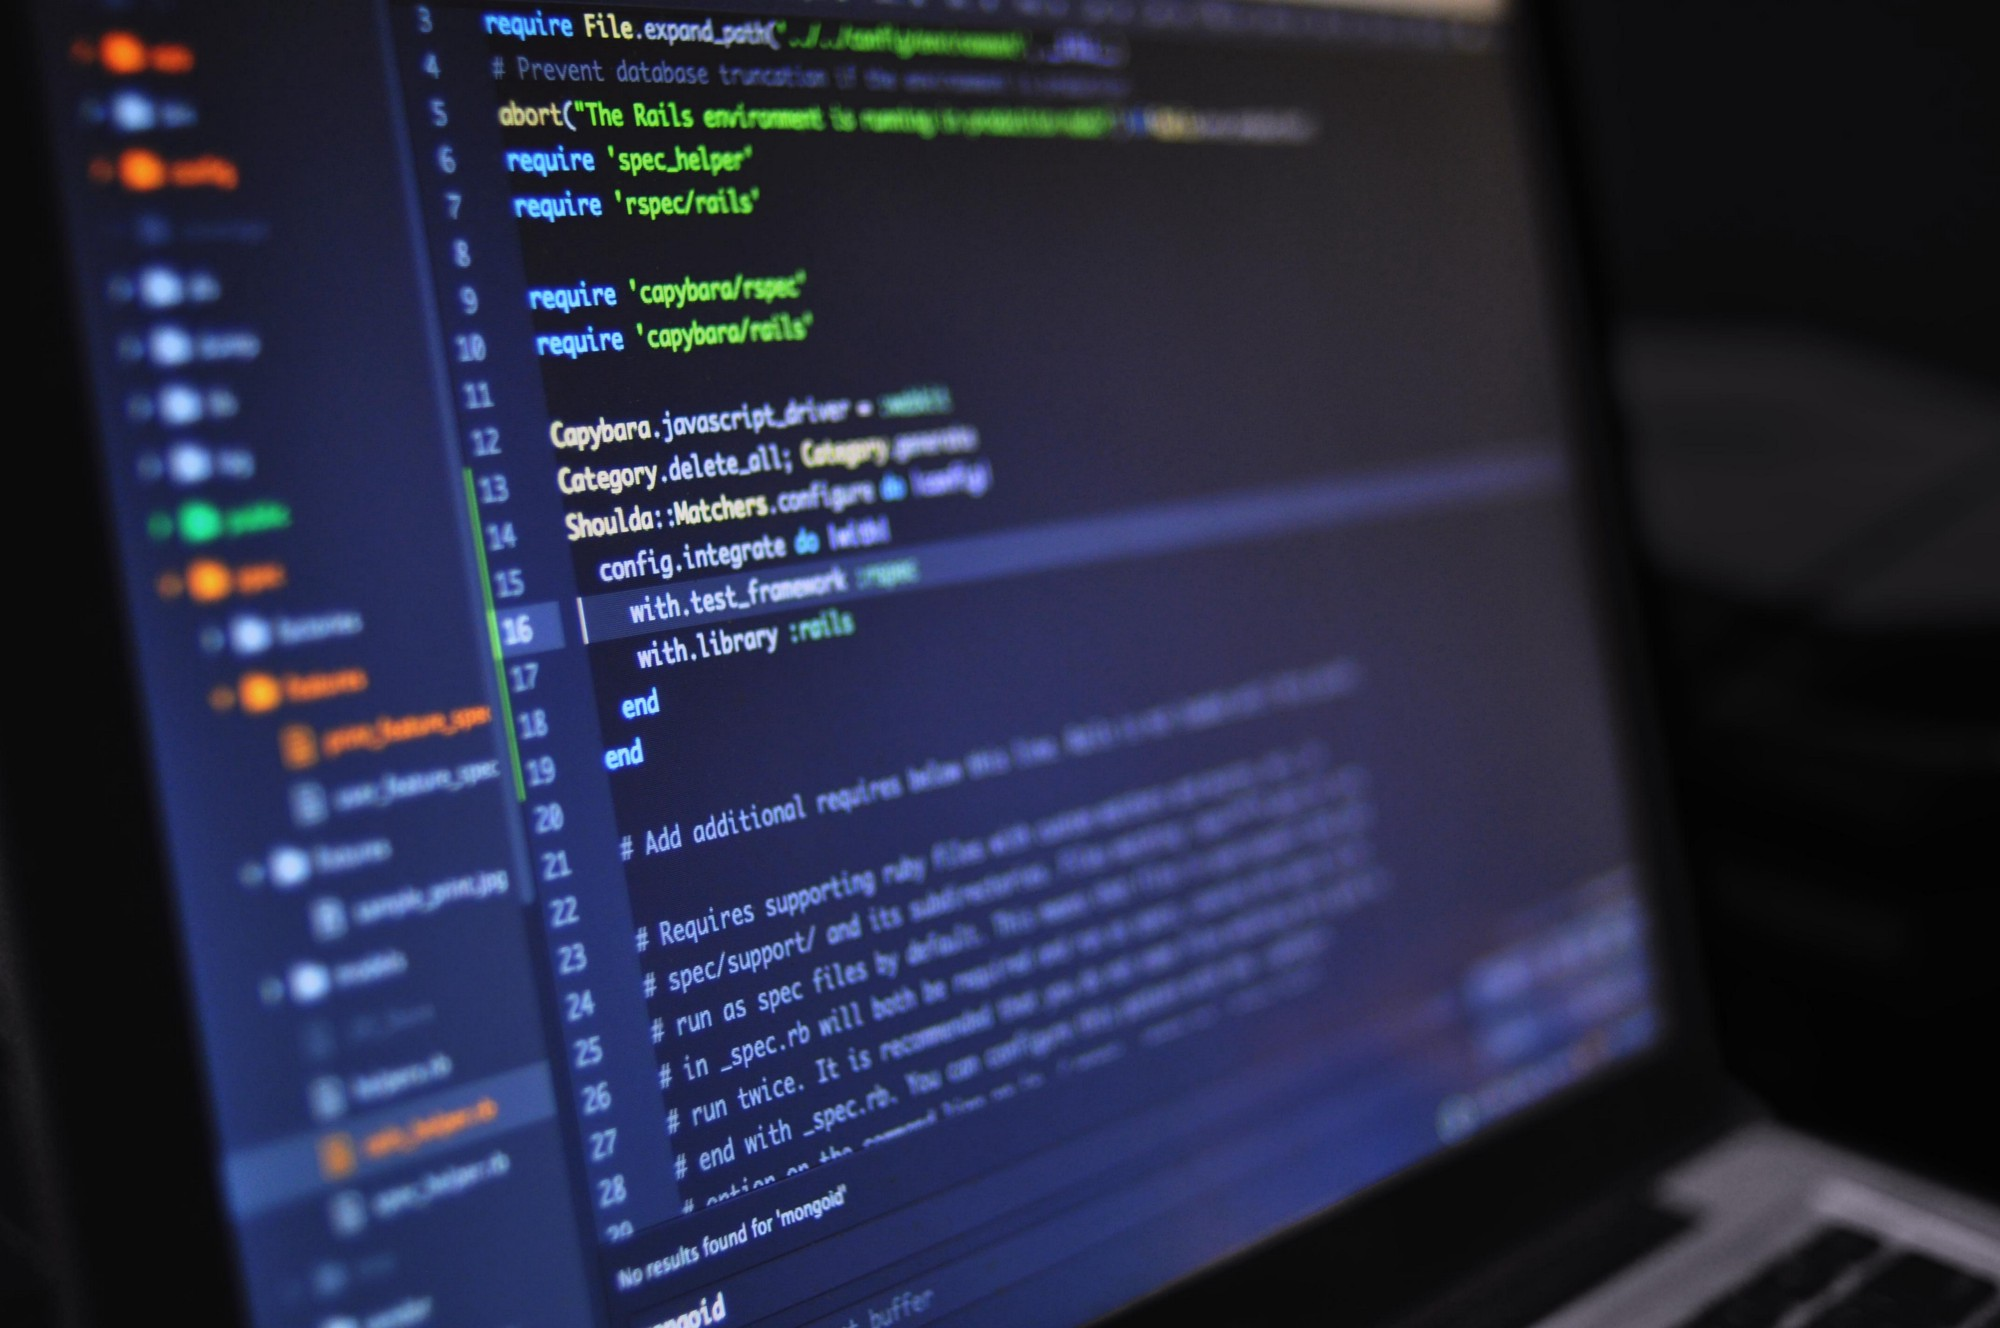 coding should i work on coding or application design first